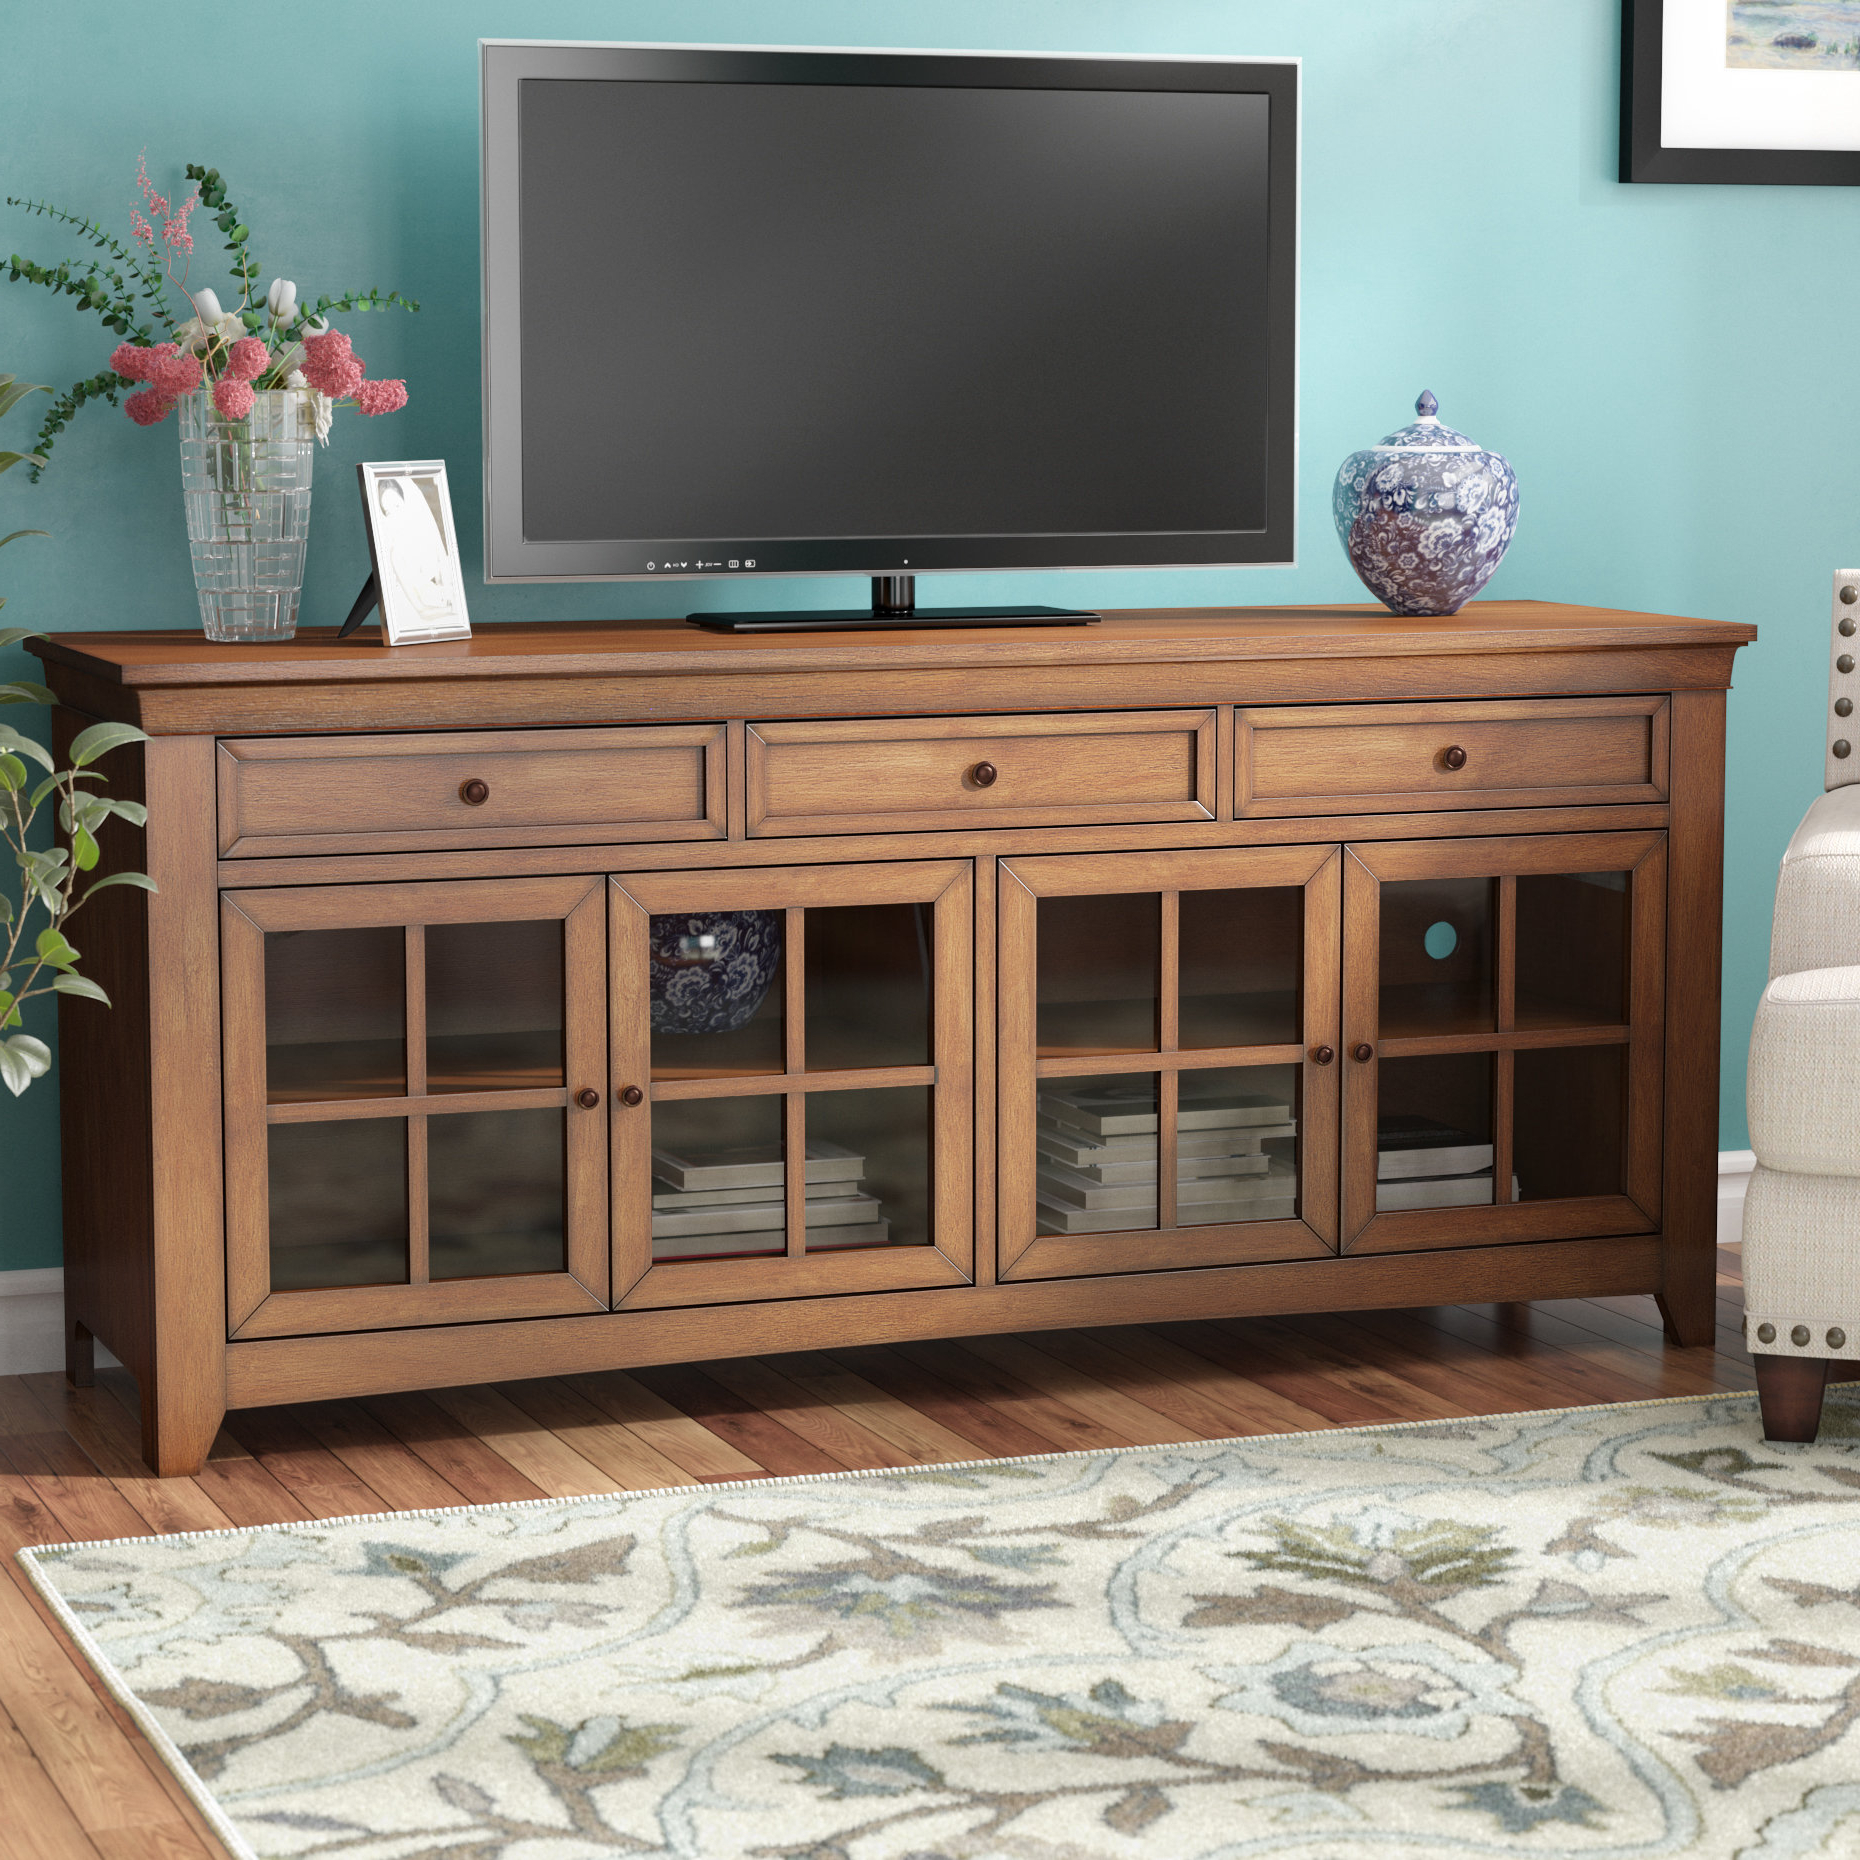 """Colefax Vintage Tv Stands For Tvs Up To 78"""" With Regard To Widely Used Alcott Hill Nido Tv Stand For Tvs Up To 70"""" (View 11 of 20)"""